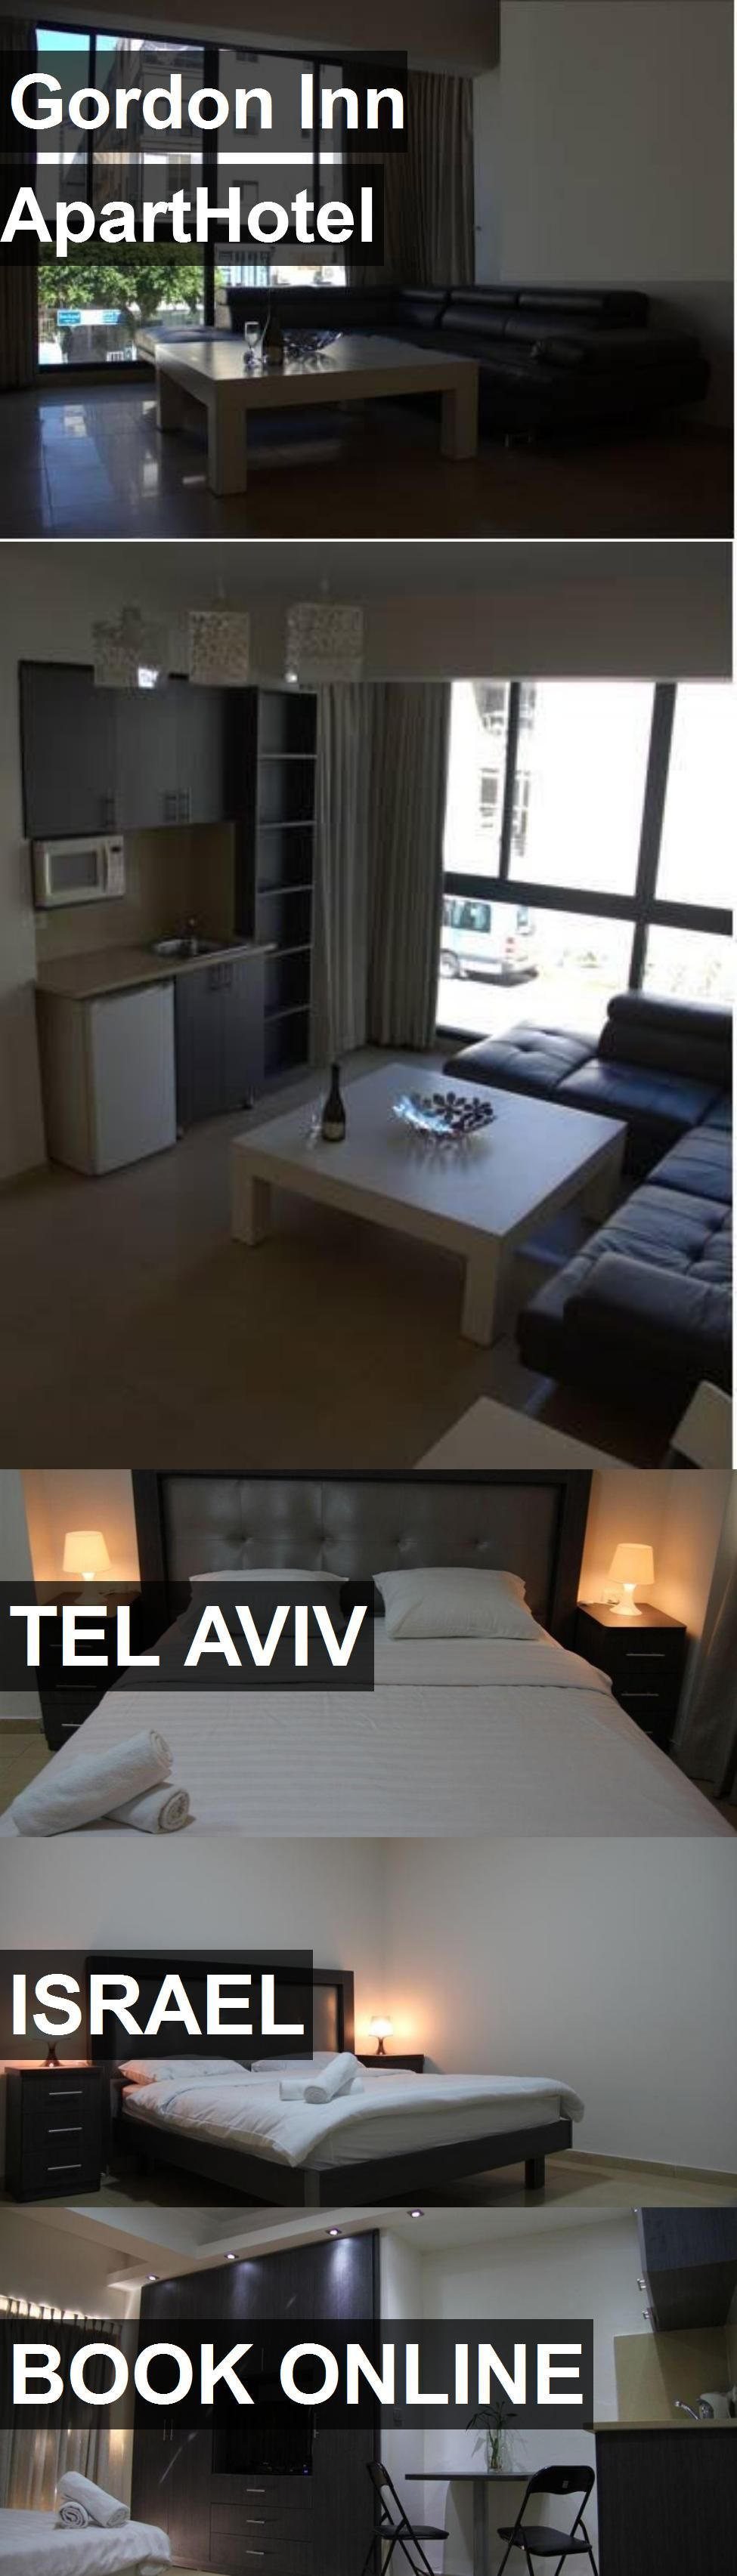 Hotel Gordon Inn ApartHotel in Tel Aviv, Israel. For more information, photos, reviews and best prices please follow the link. #Israel #TelAviv #GordonInnApartHotel #hotel #travel #vacation